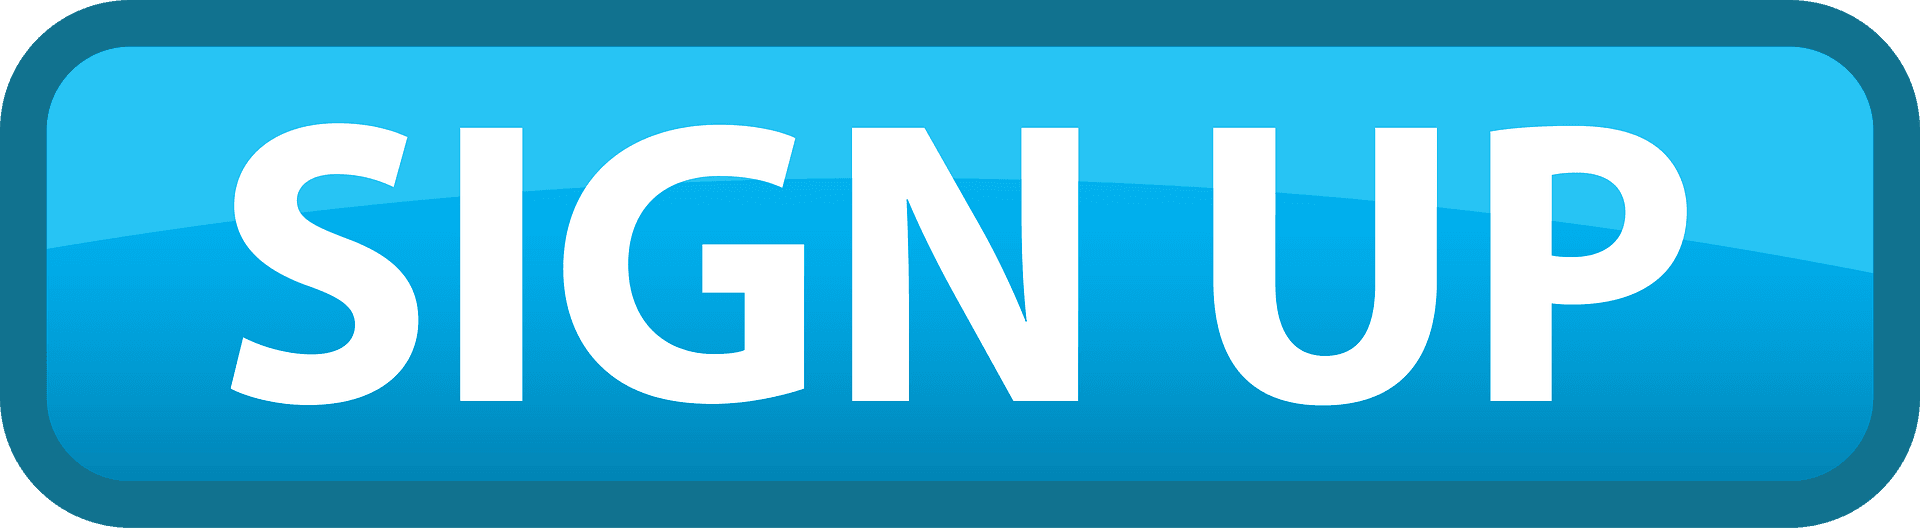 sign-up-icon -- white lettering, blue background